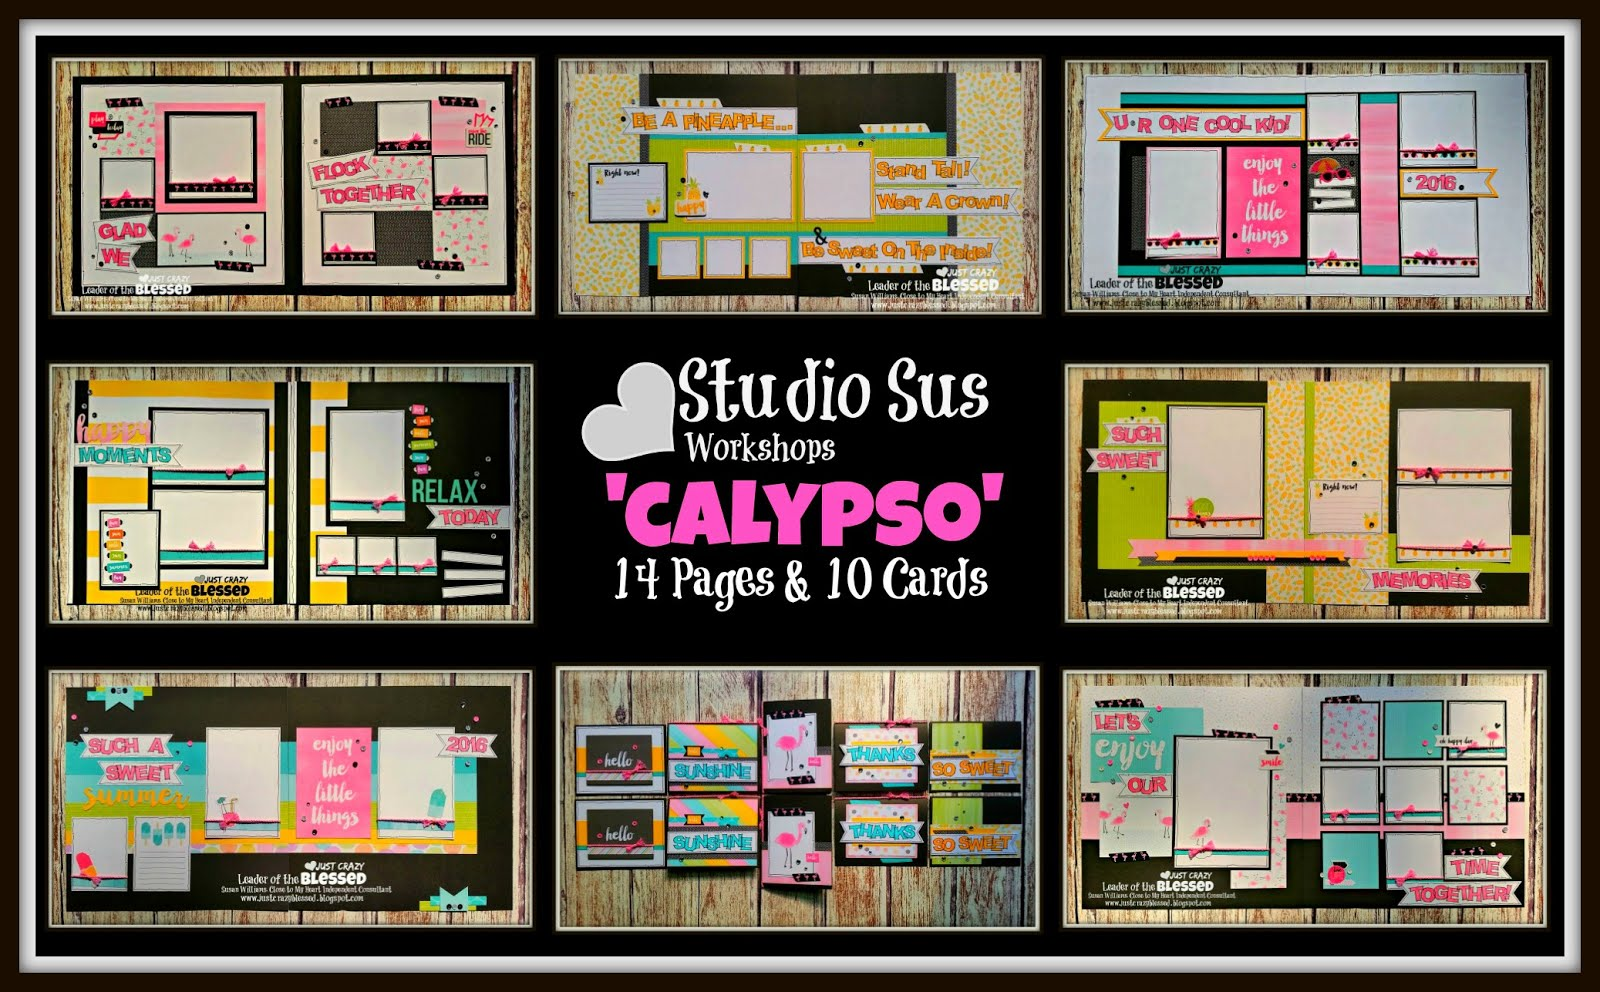 'Calypso' Workshop!